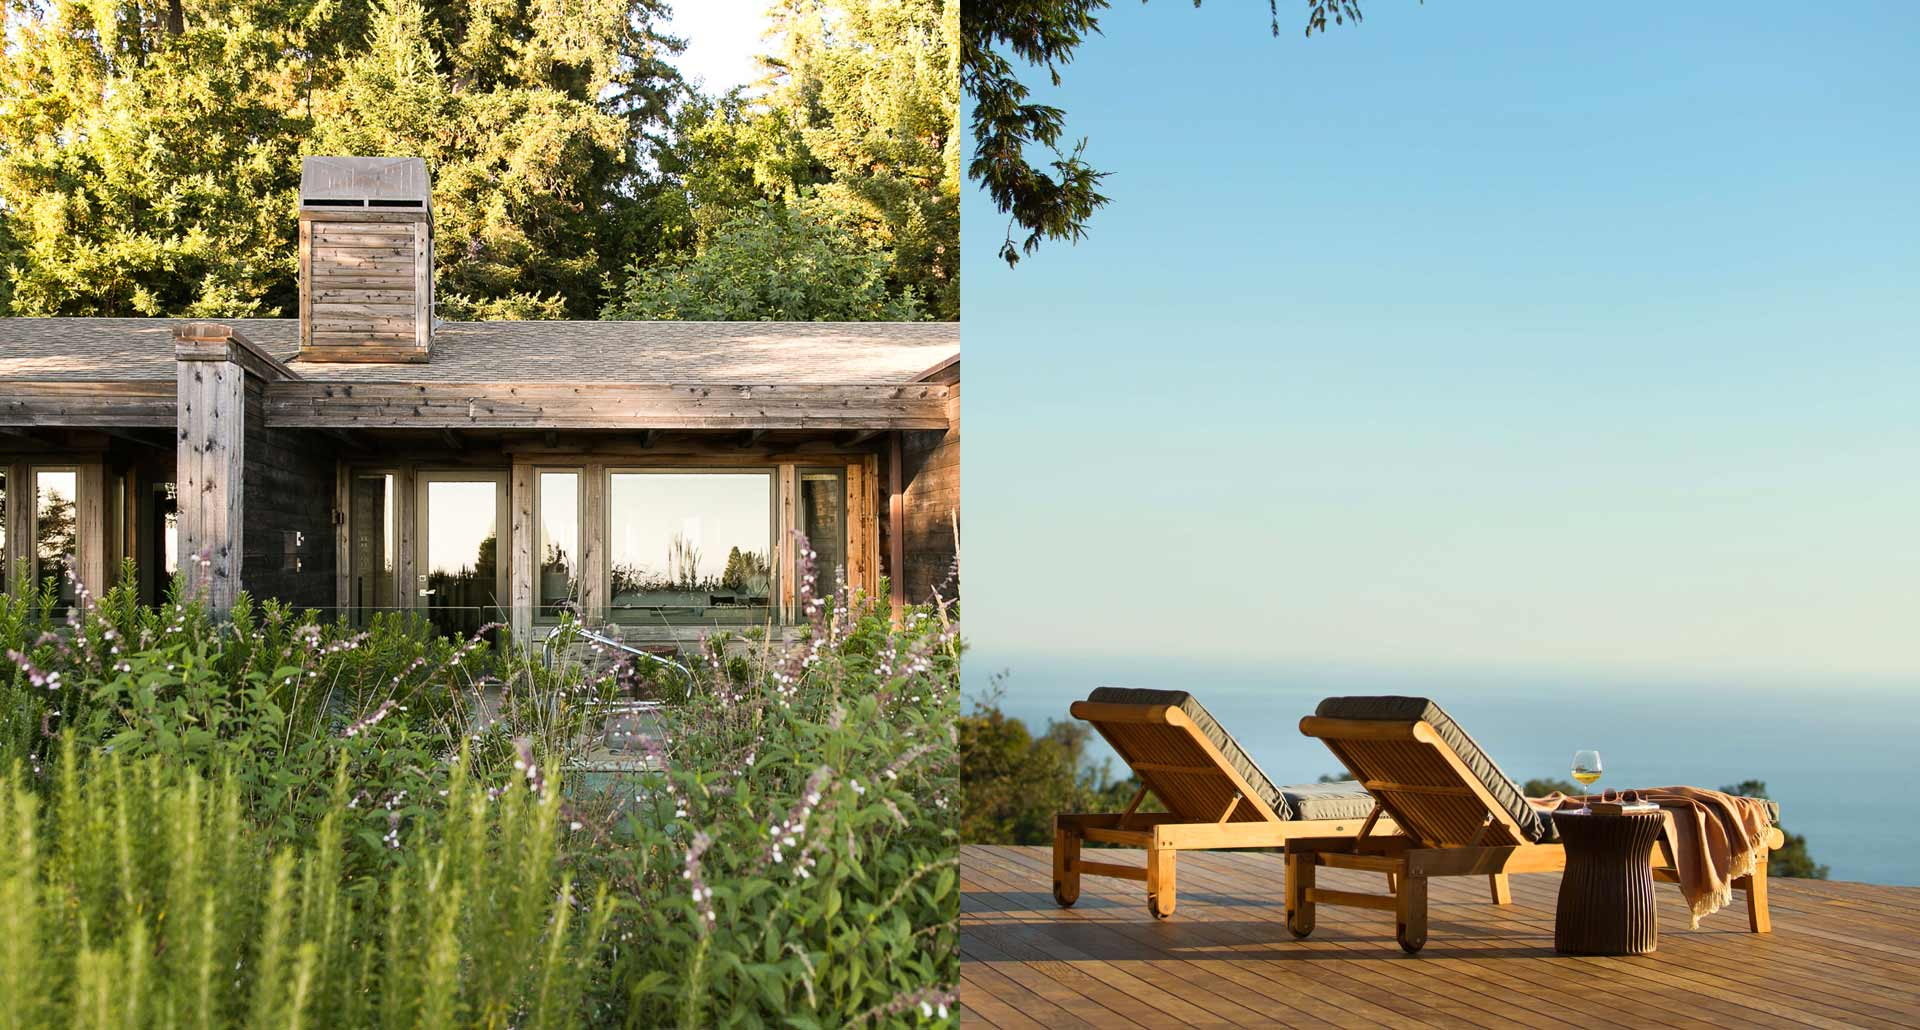 Ventana Big Sur - romantic boutique hotel in Big Sur, California